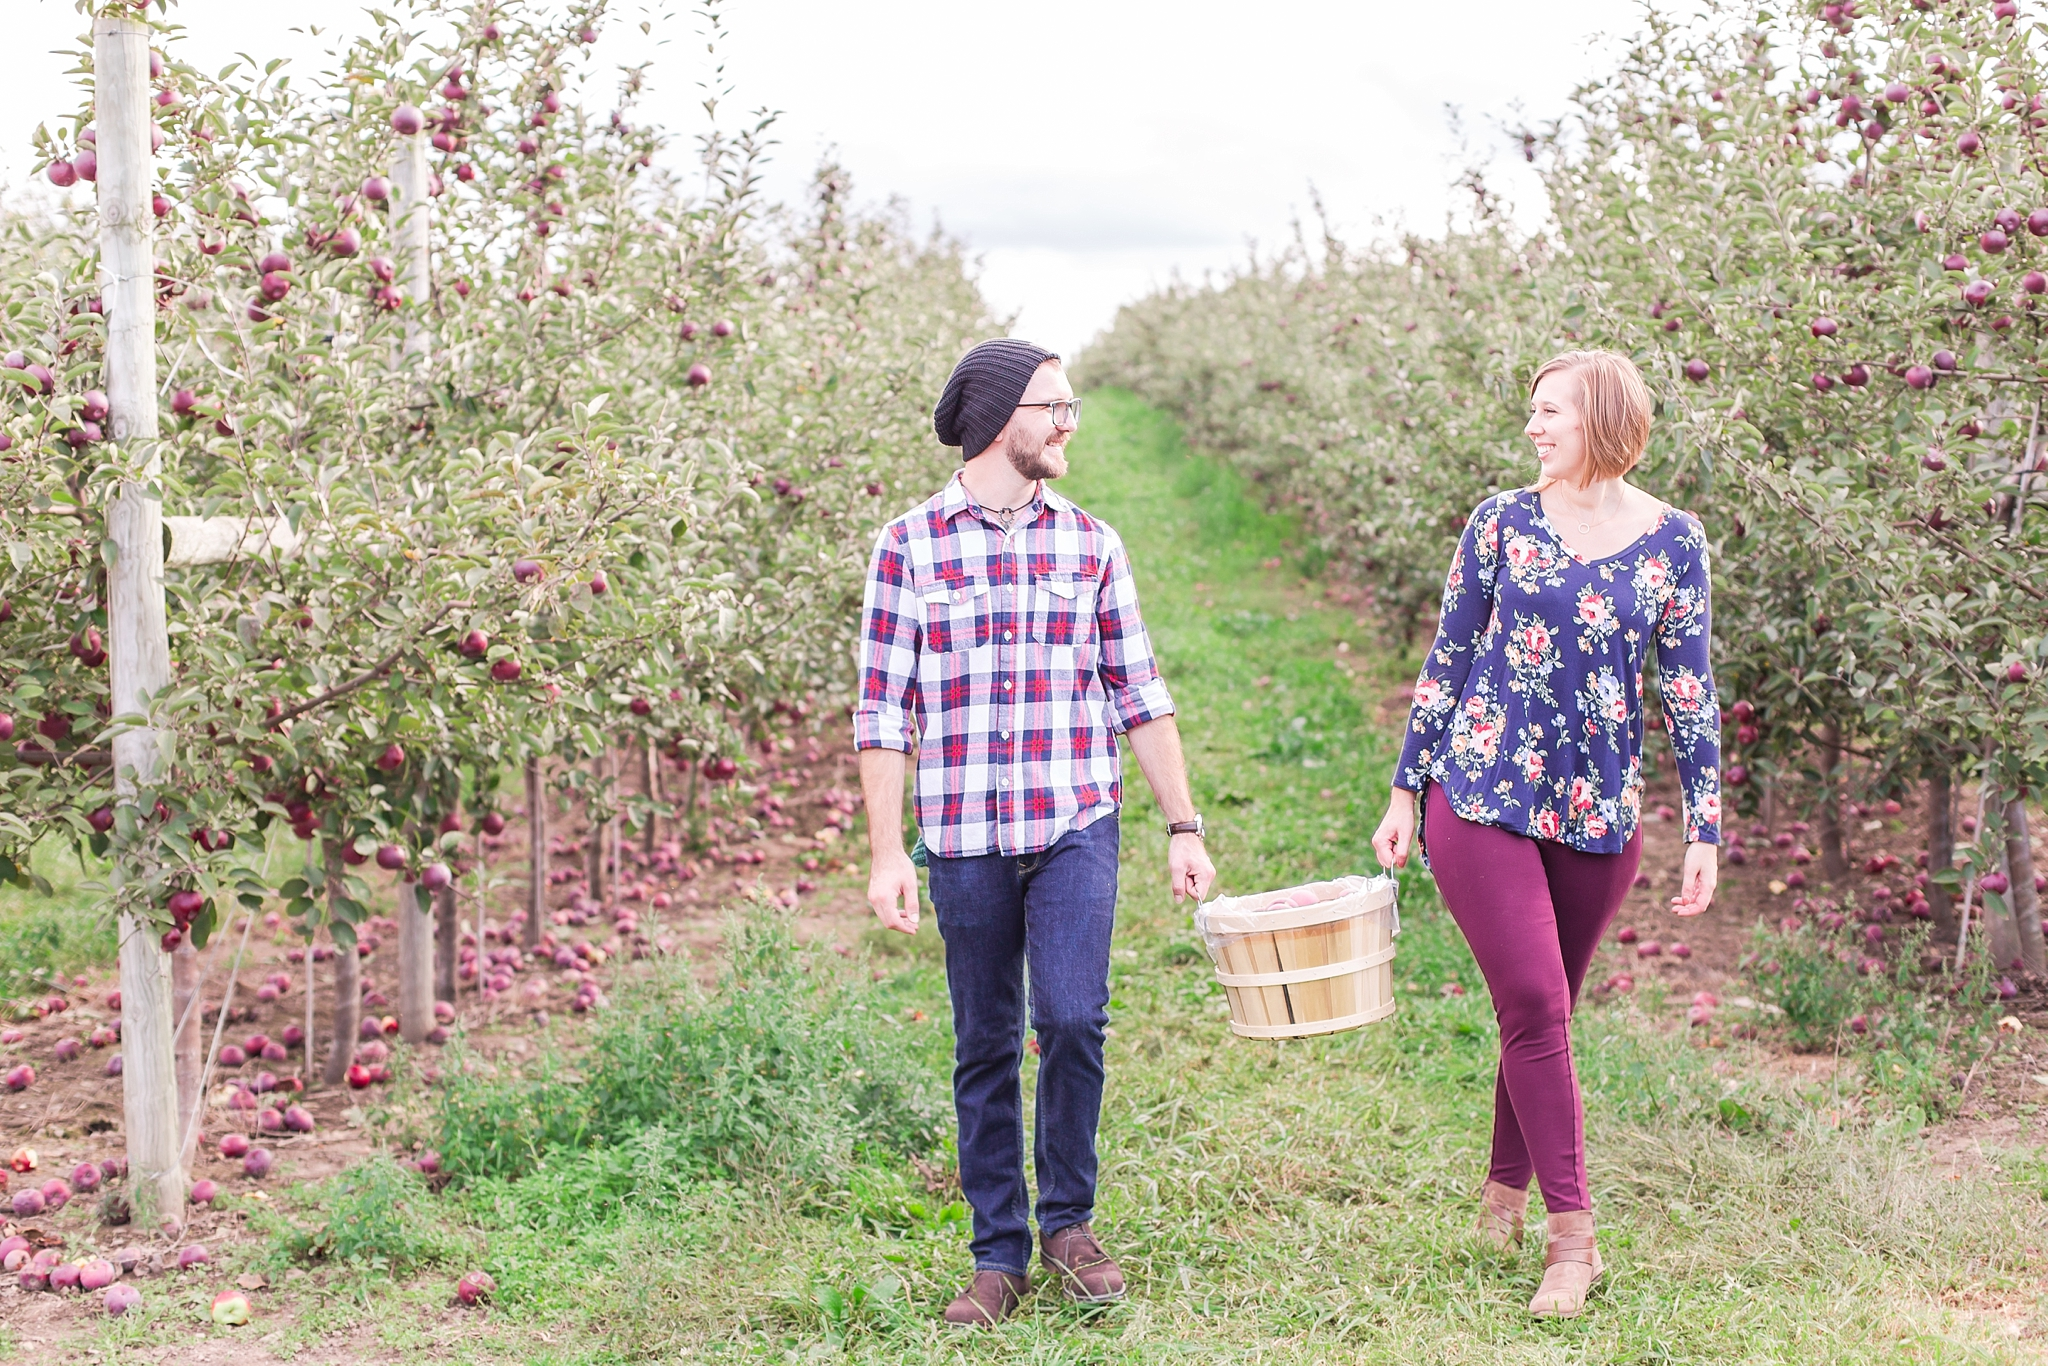 playful-fall-engagement-photos-at-hy's-cider-mill-ochard-in-bruce-township-michigan-by-courtney-carolyn-photography_0024.jpg